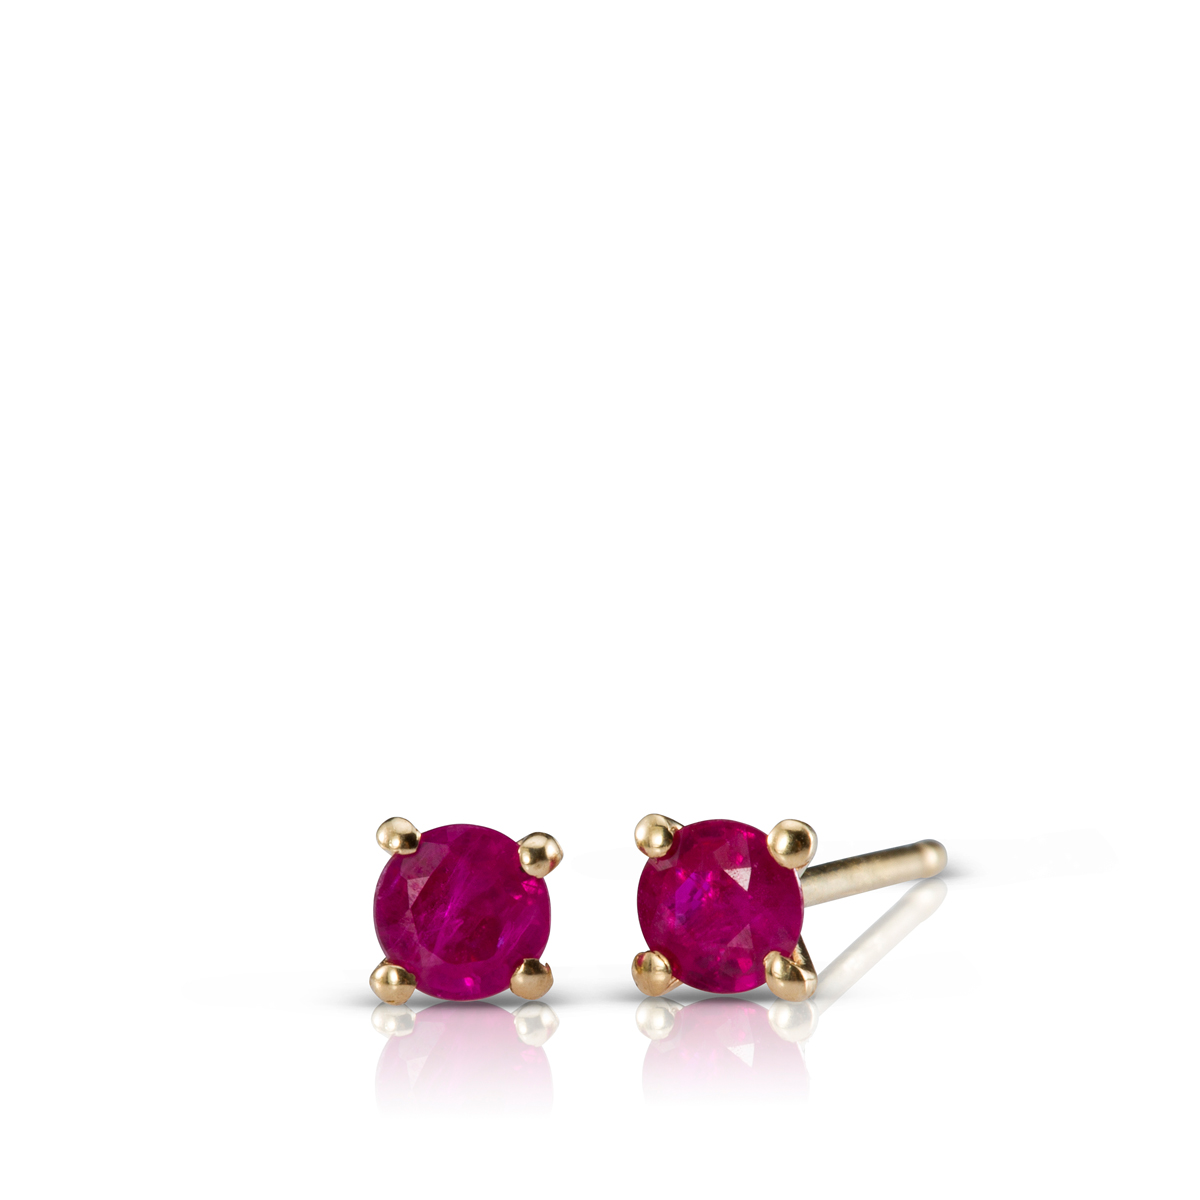 Solitaire rubies earrings